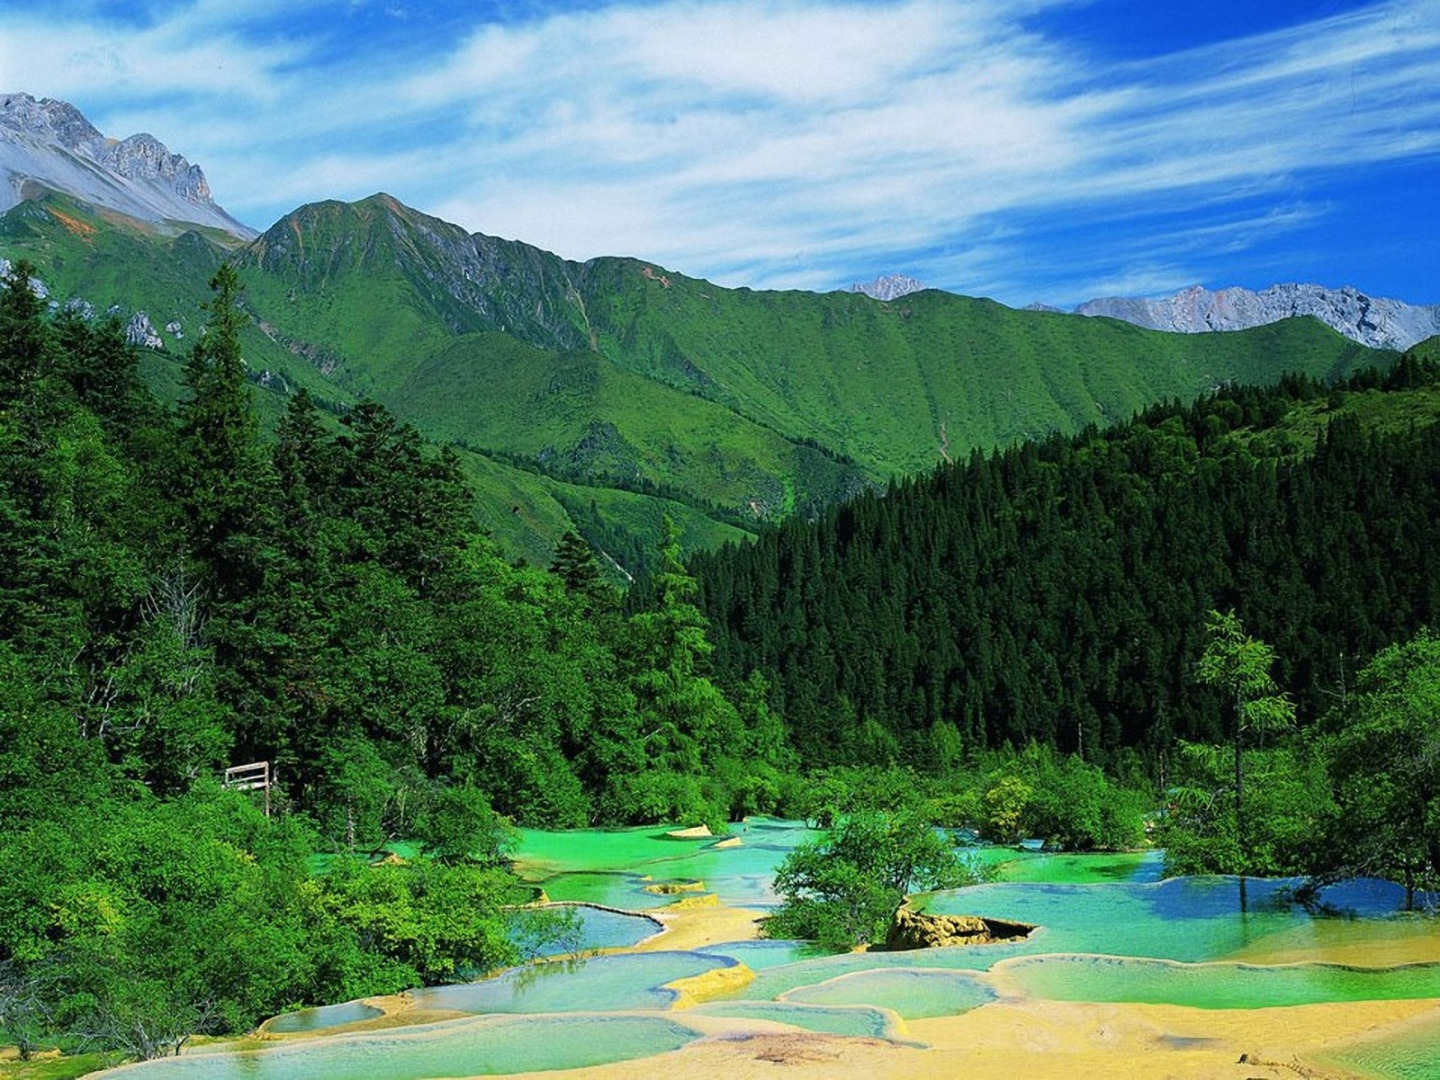 Picture from brothersoft.  Jiuzhaigou Valley was inscribed by UNESCO as a World Heritage Site in 1992 and a World Biosphere Reserve in 1997. It belongs to the category V (Protected Landscape) in the IUCN system of protected area categorization.